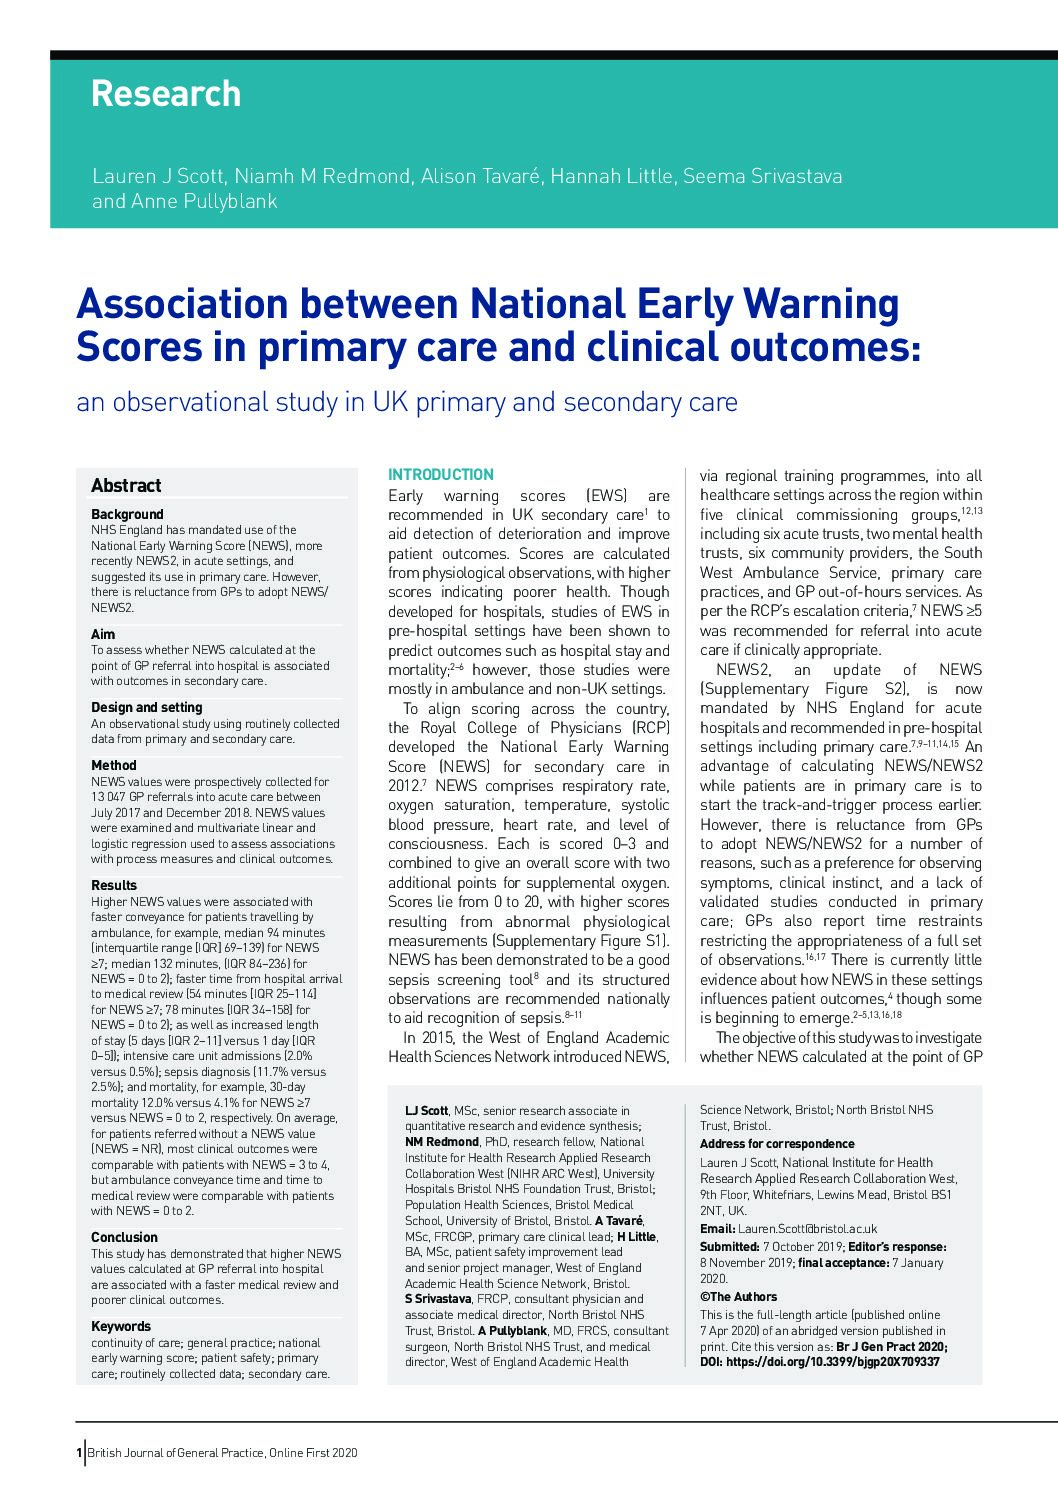 Association between NEWS in primary care & clinical outcomes